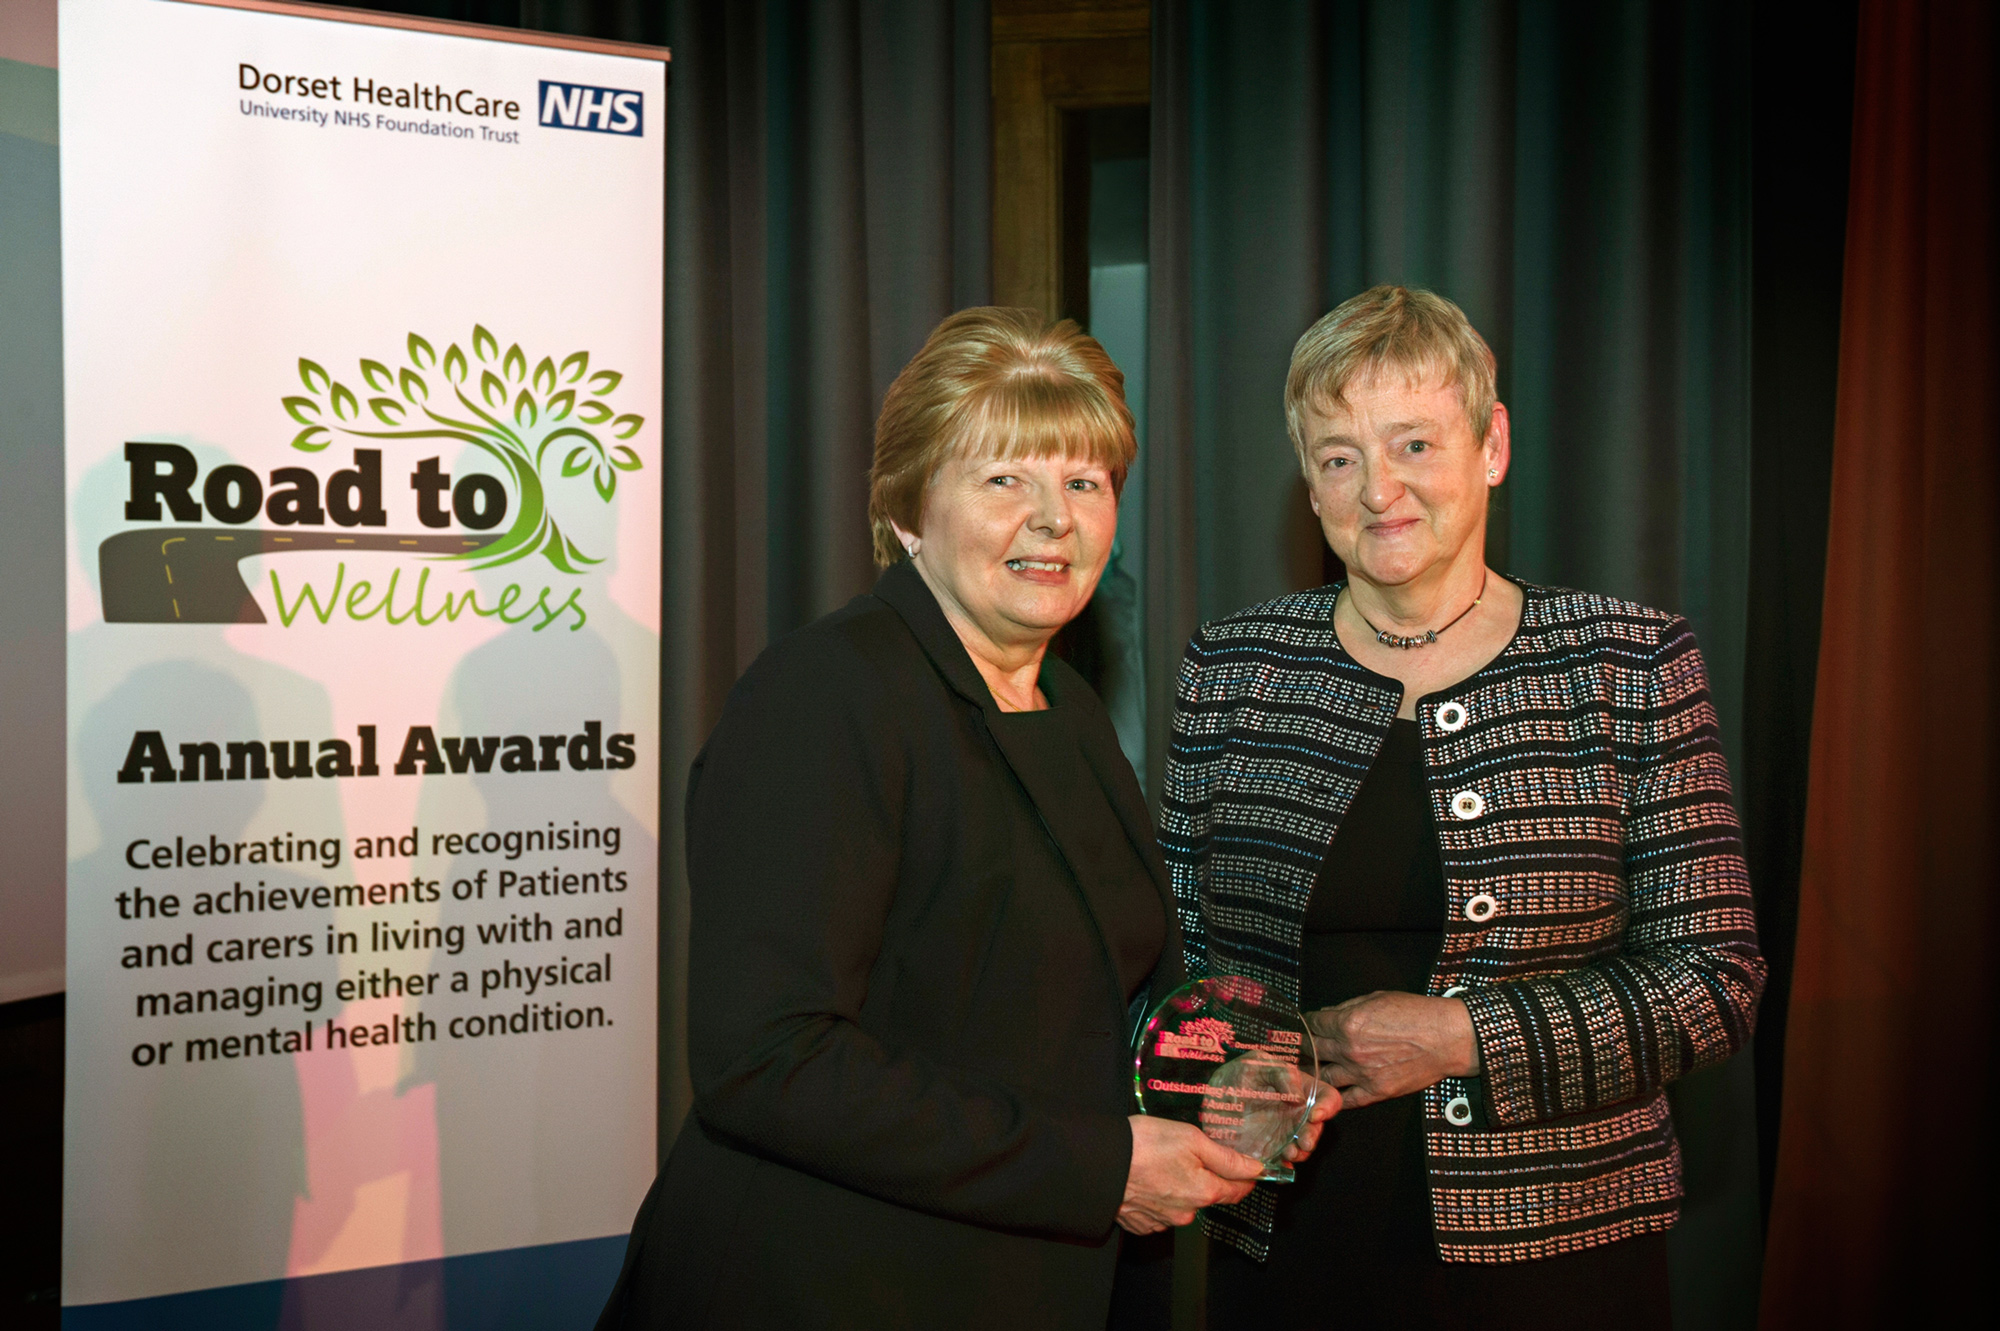 Help to celebrate outstanding recoveries from major health setbacks